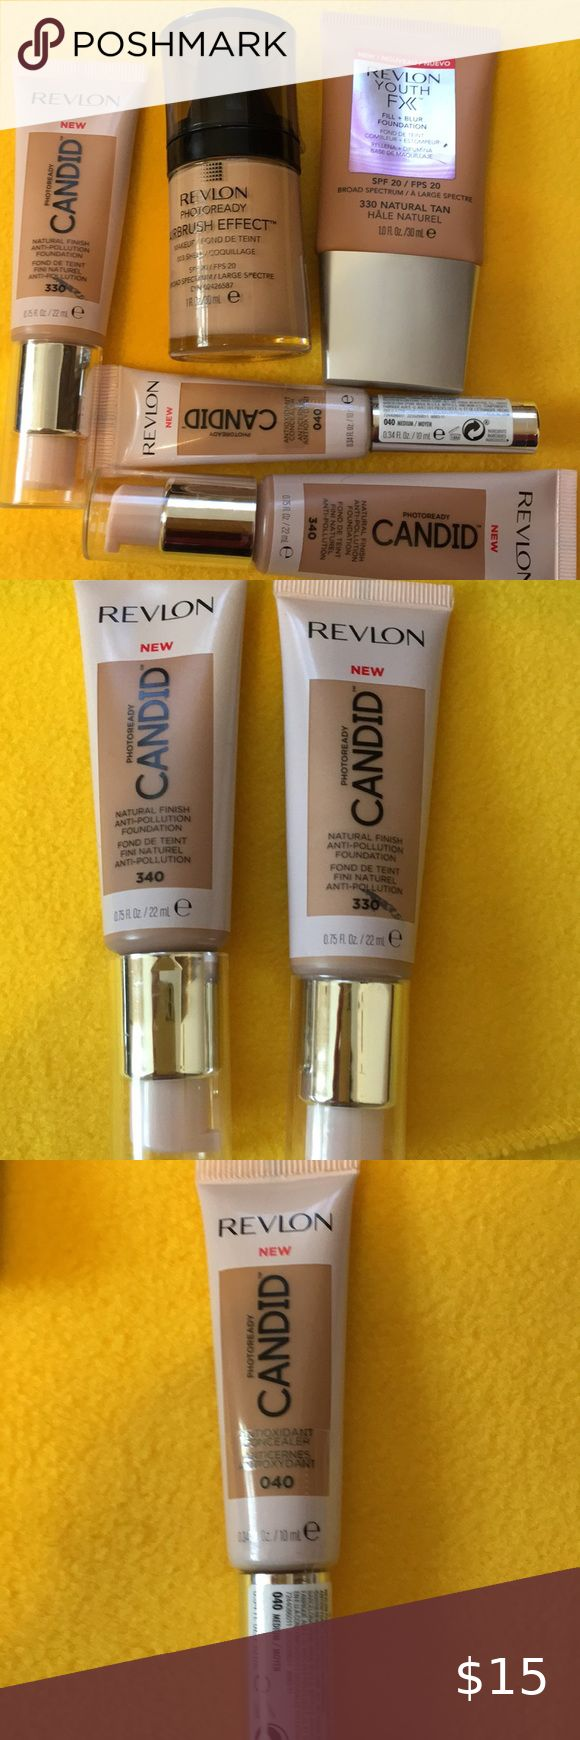 ️ Revlon ️ New. Never Used 2 Natural Finish Anti Pollution